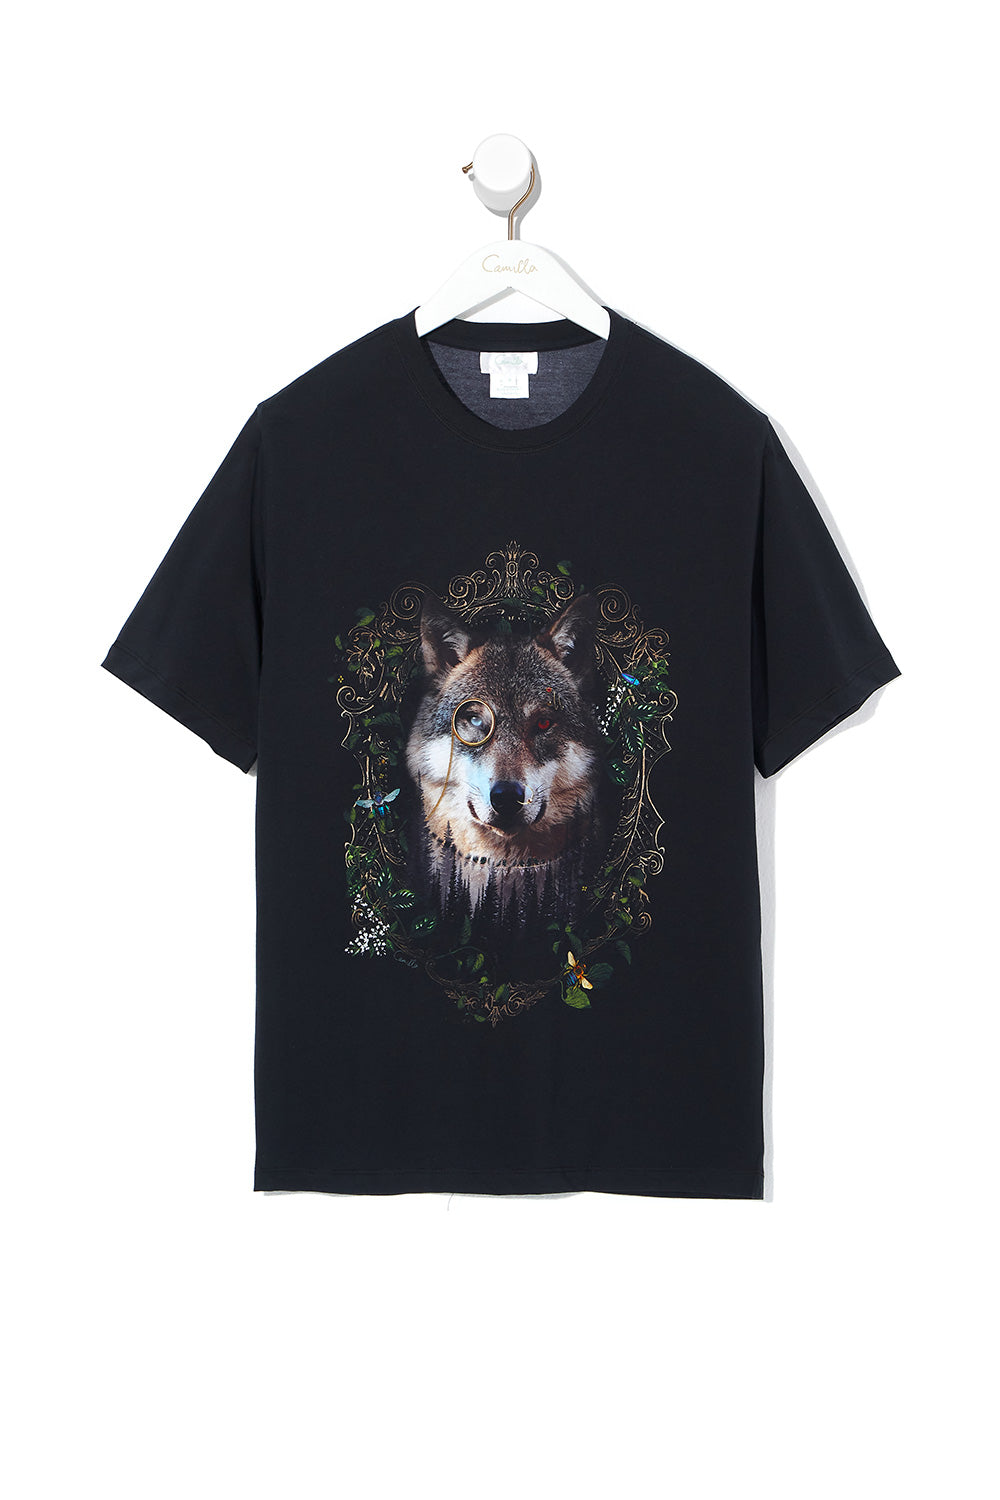 ROUND NECK T SHIRT MIRROR MIRROR